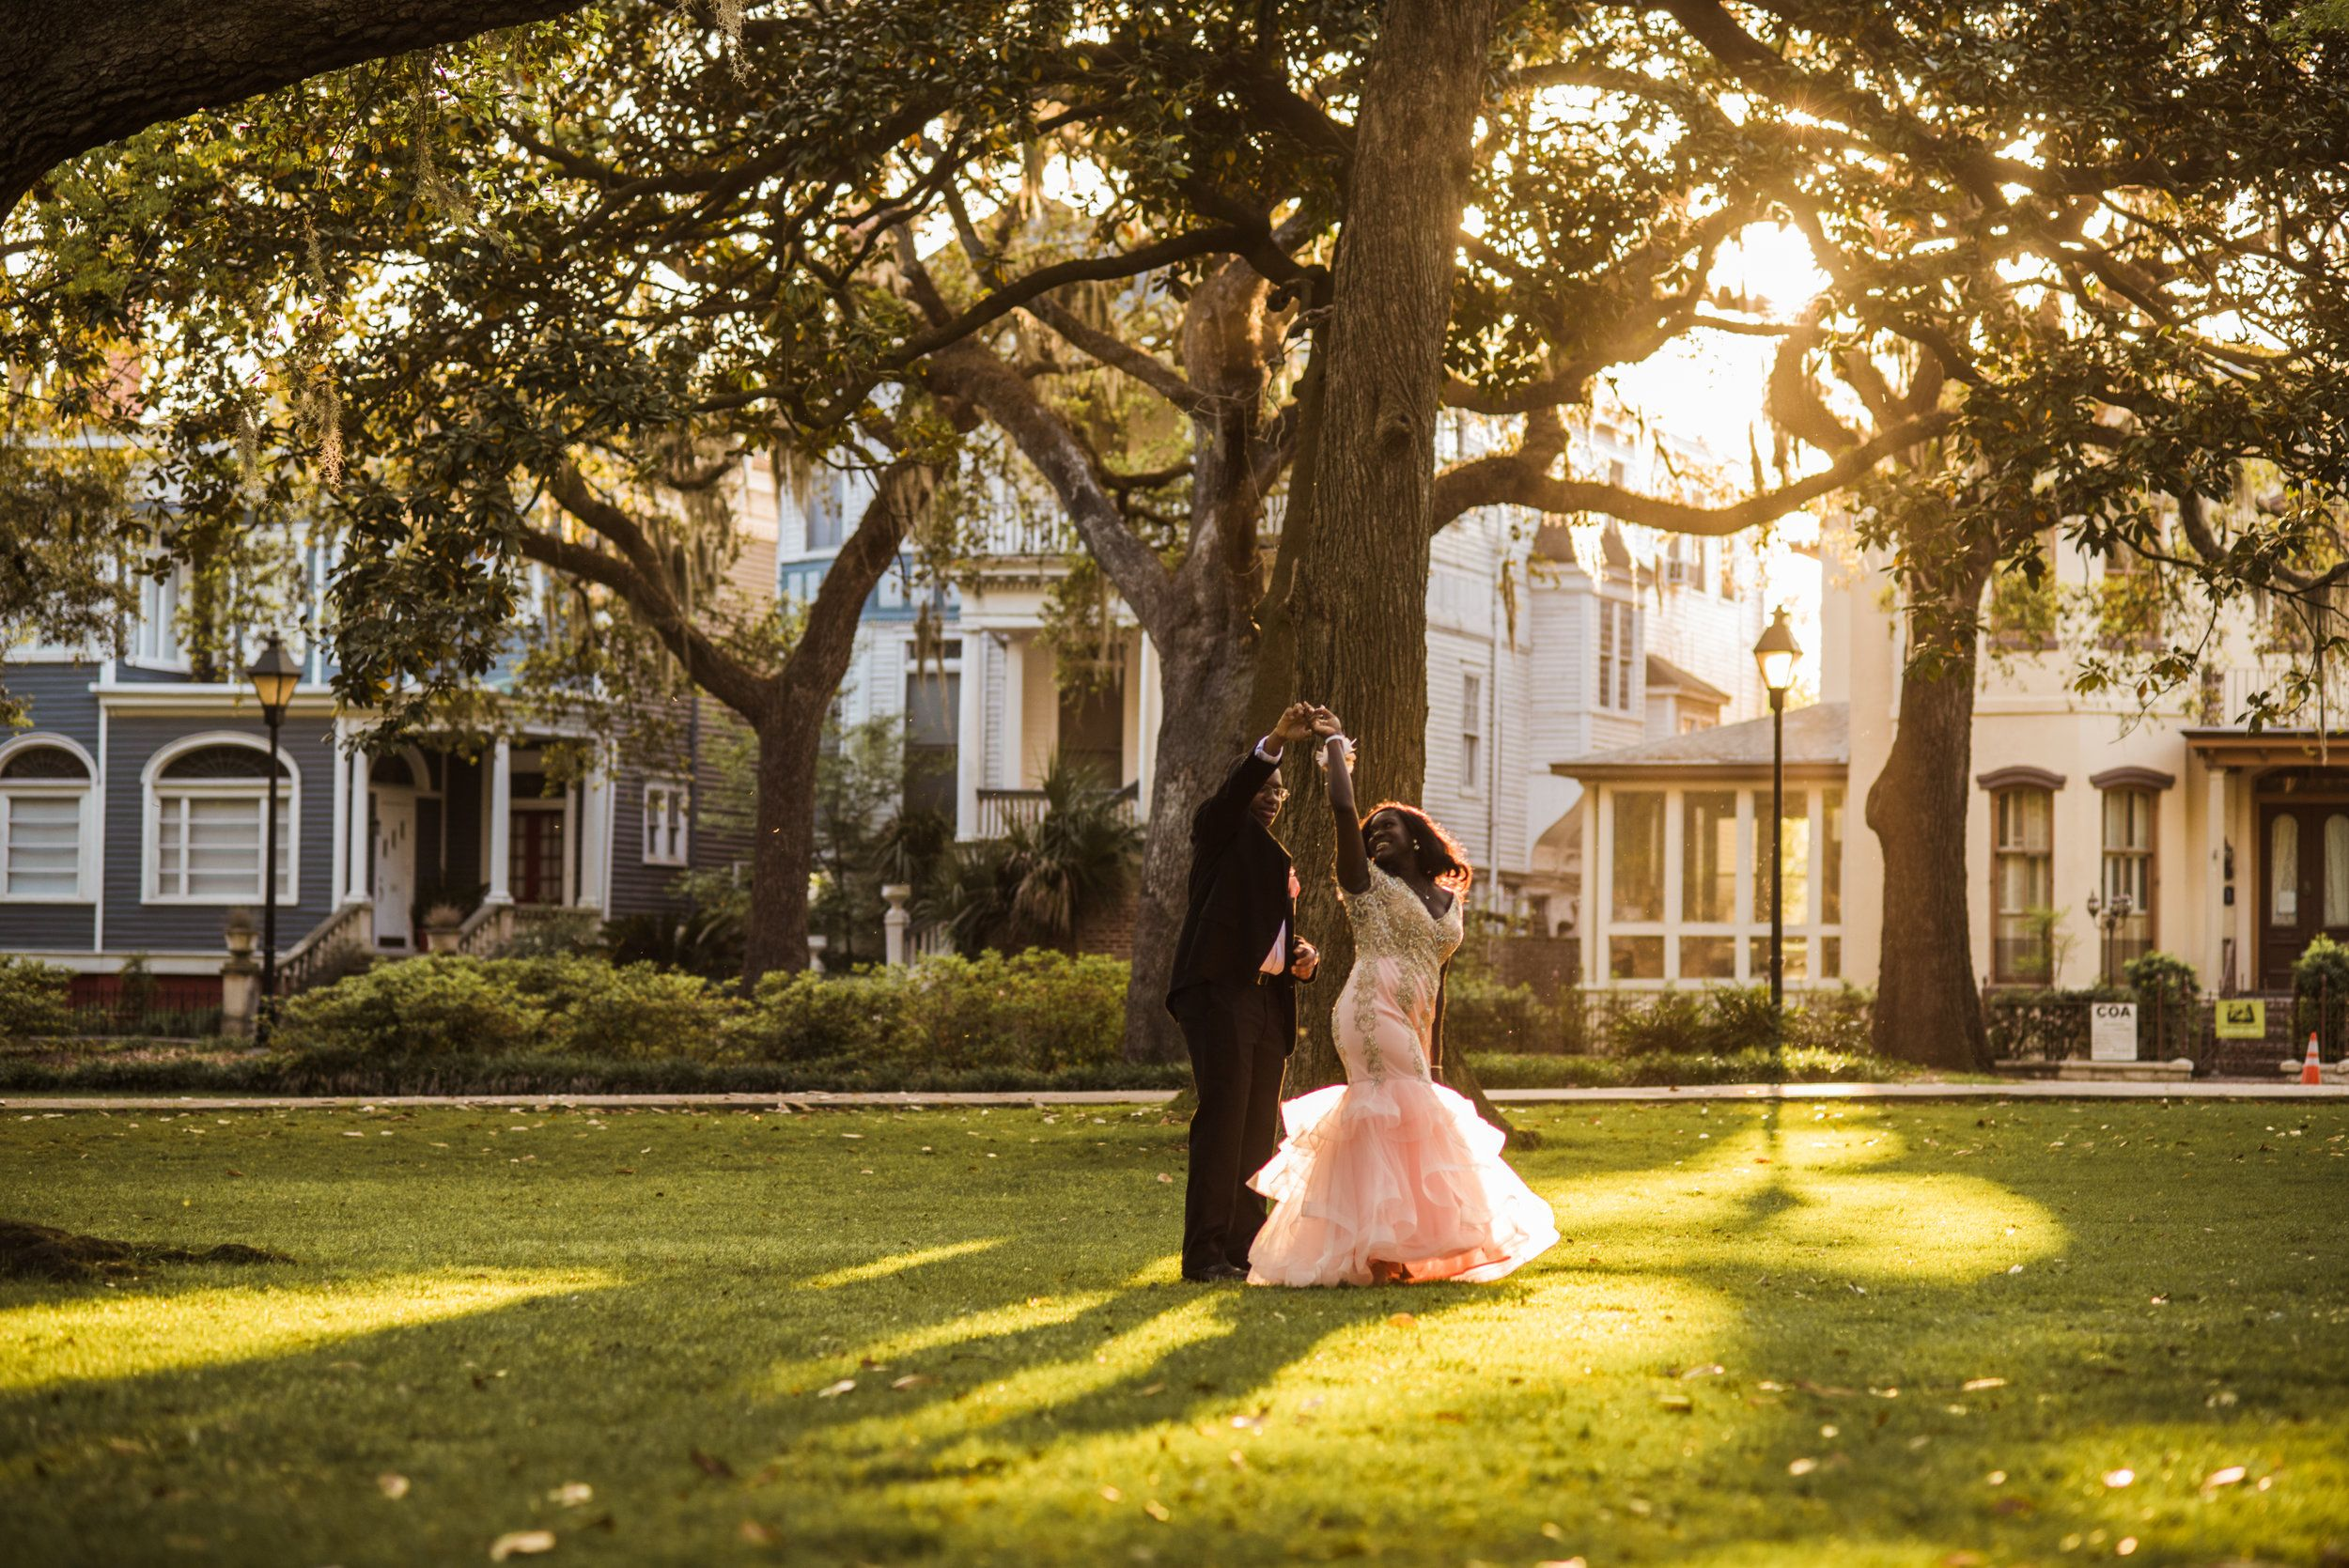 Mini Session at Forsyth Park #promphotographyposes